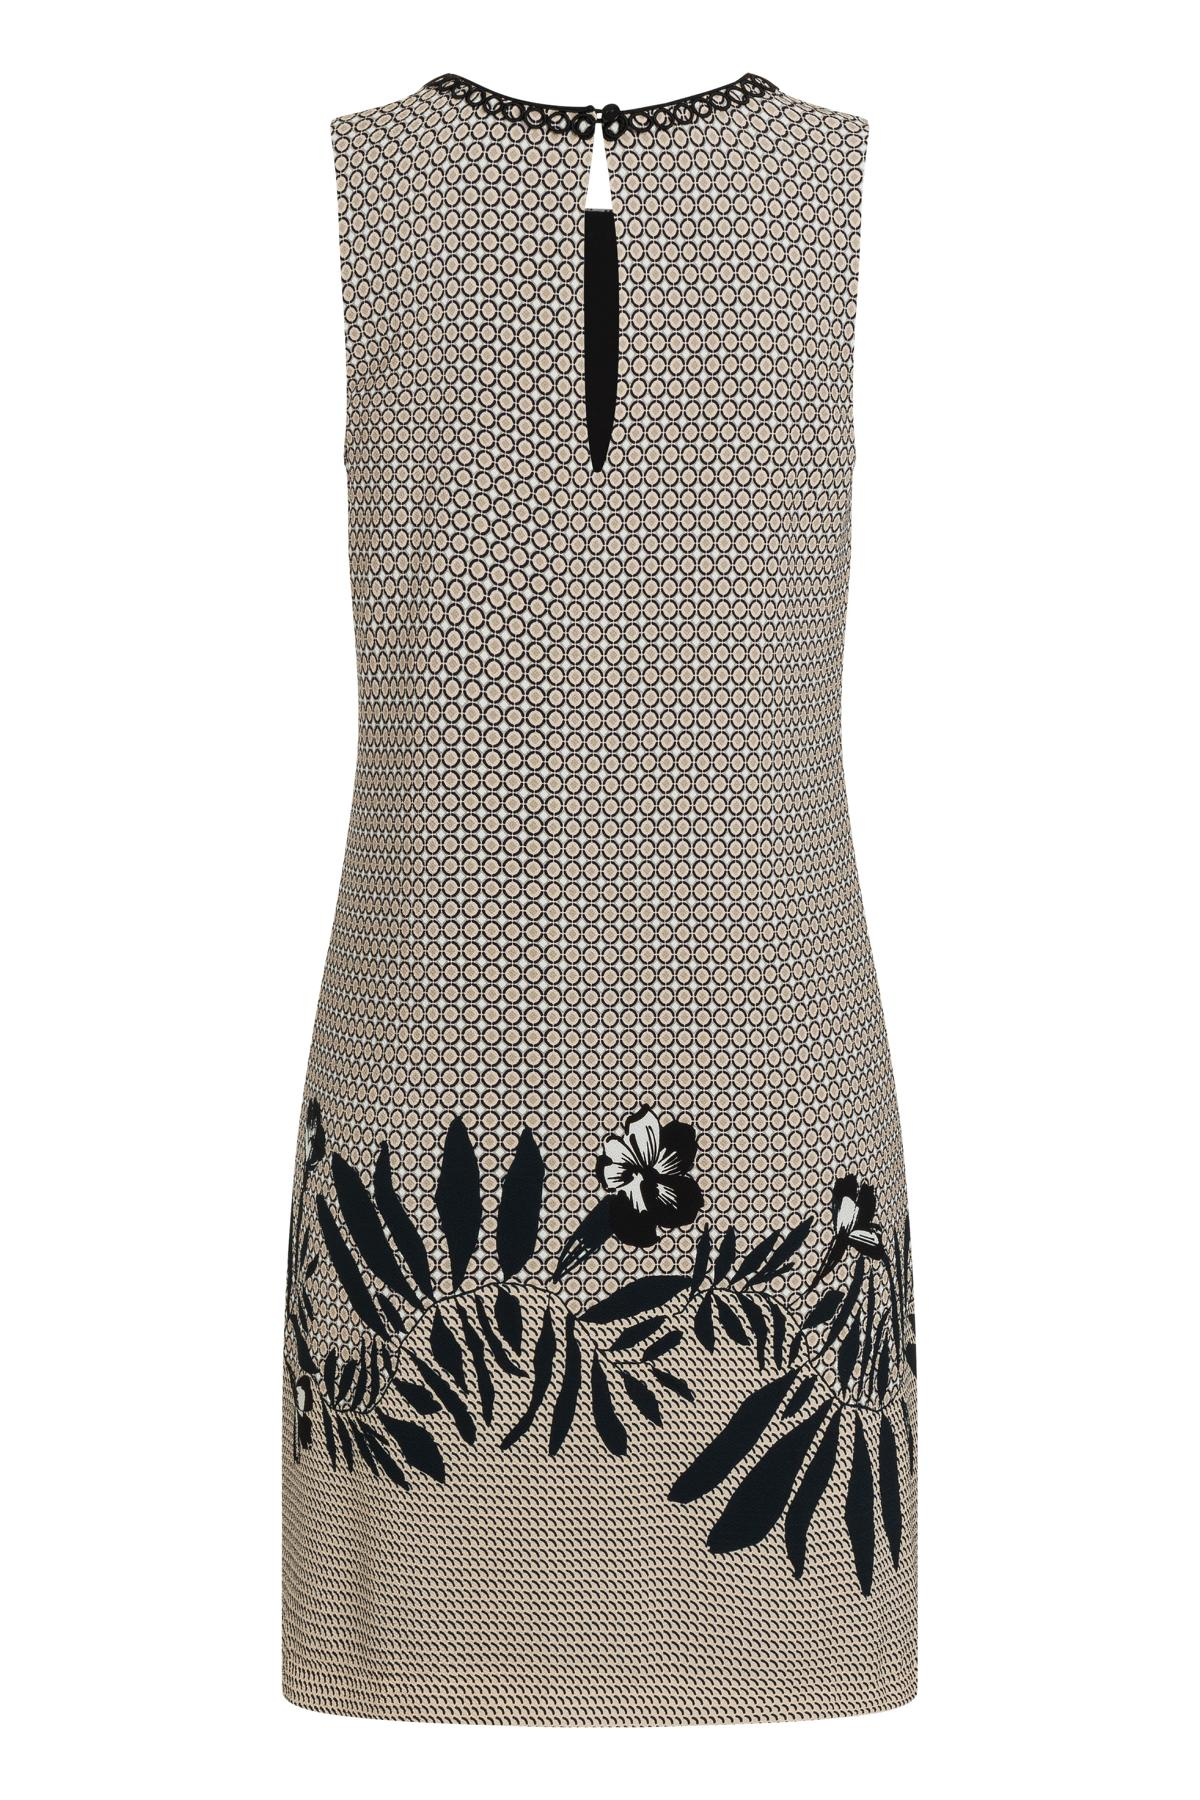 Detailed view 2 of Ana Alcazar Sleeveless Dress Sedoni